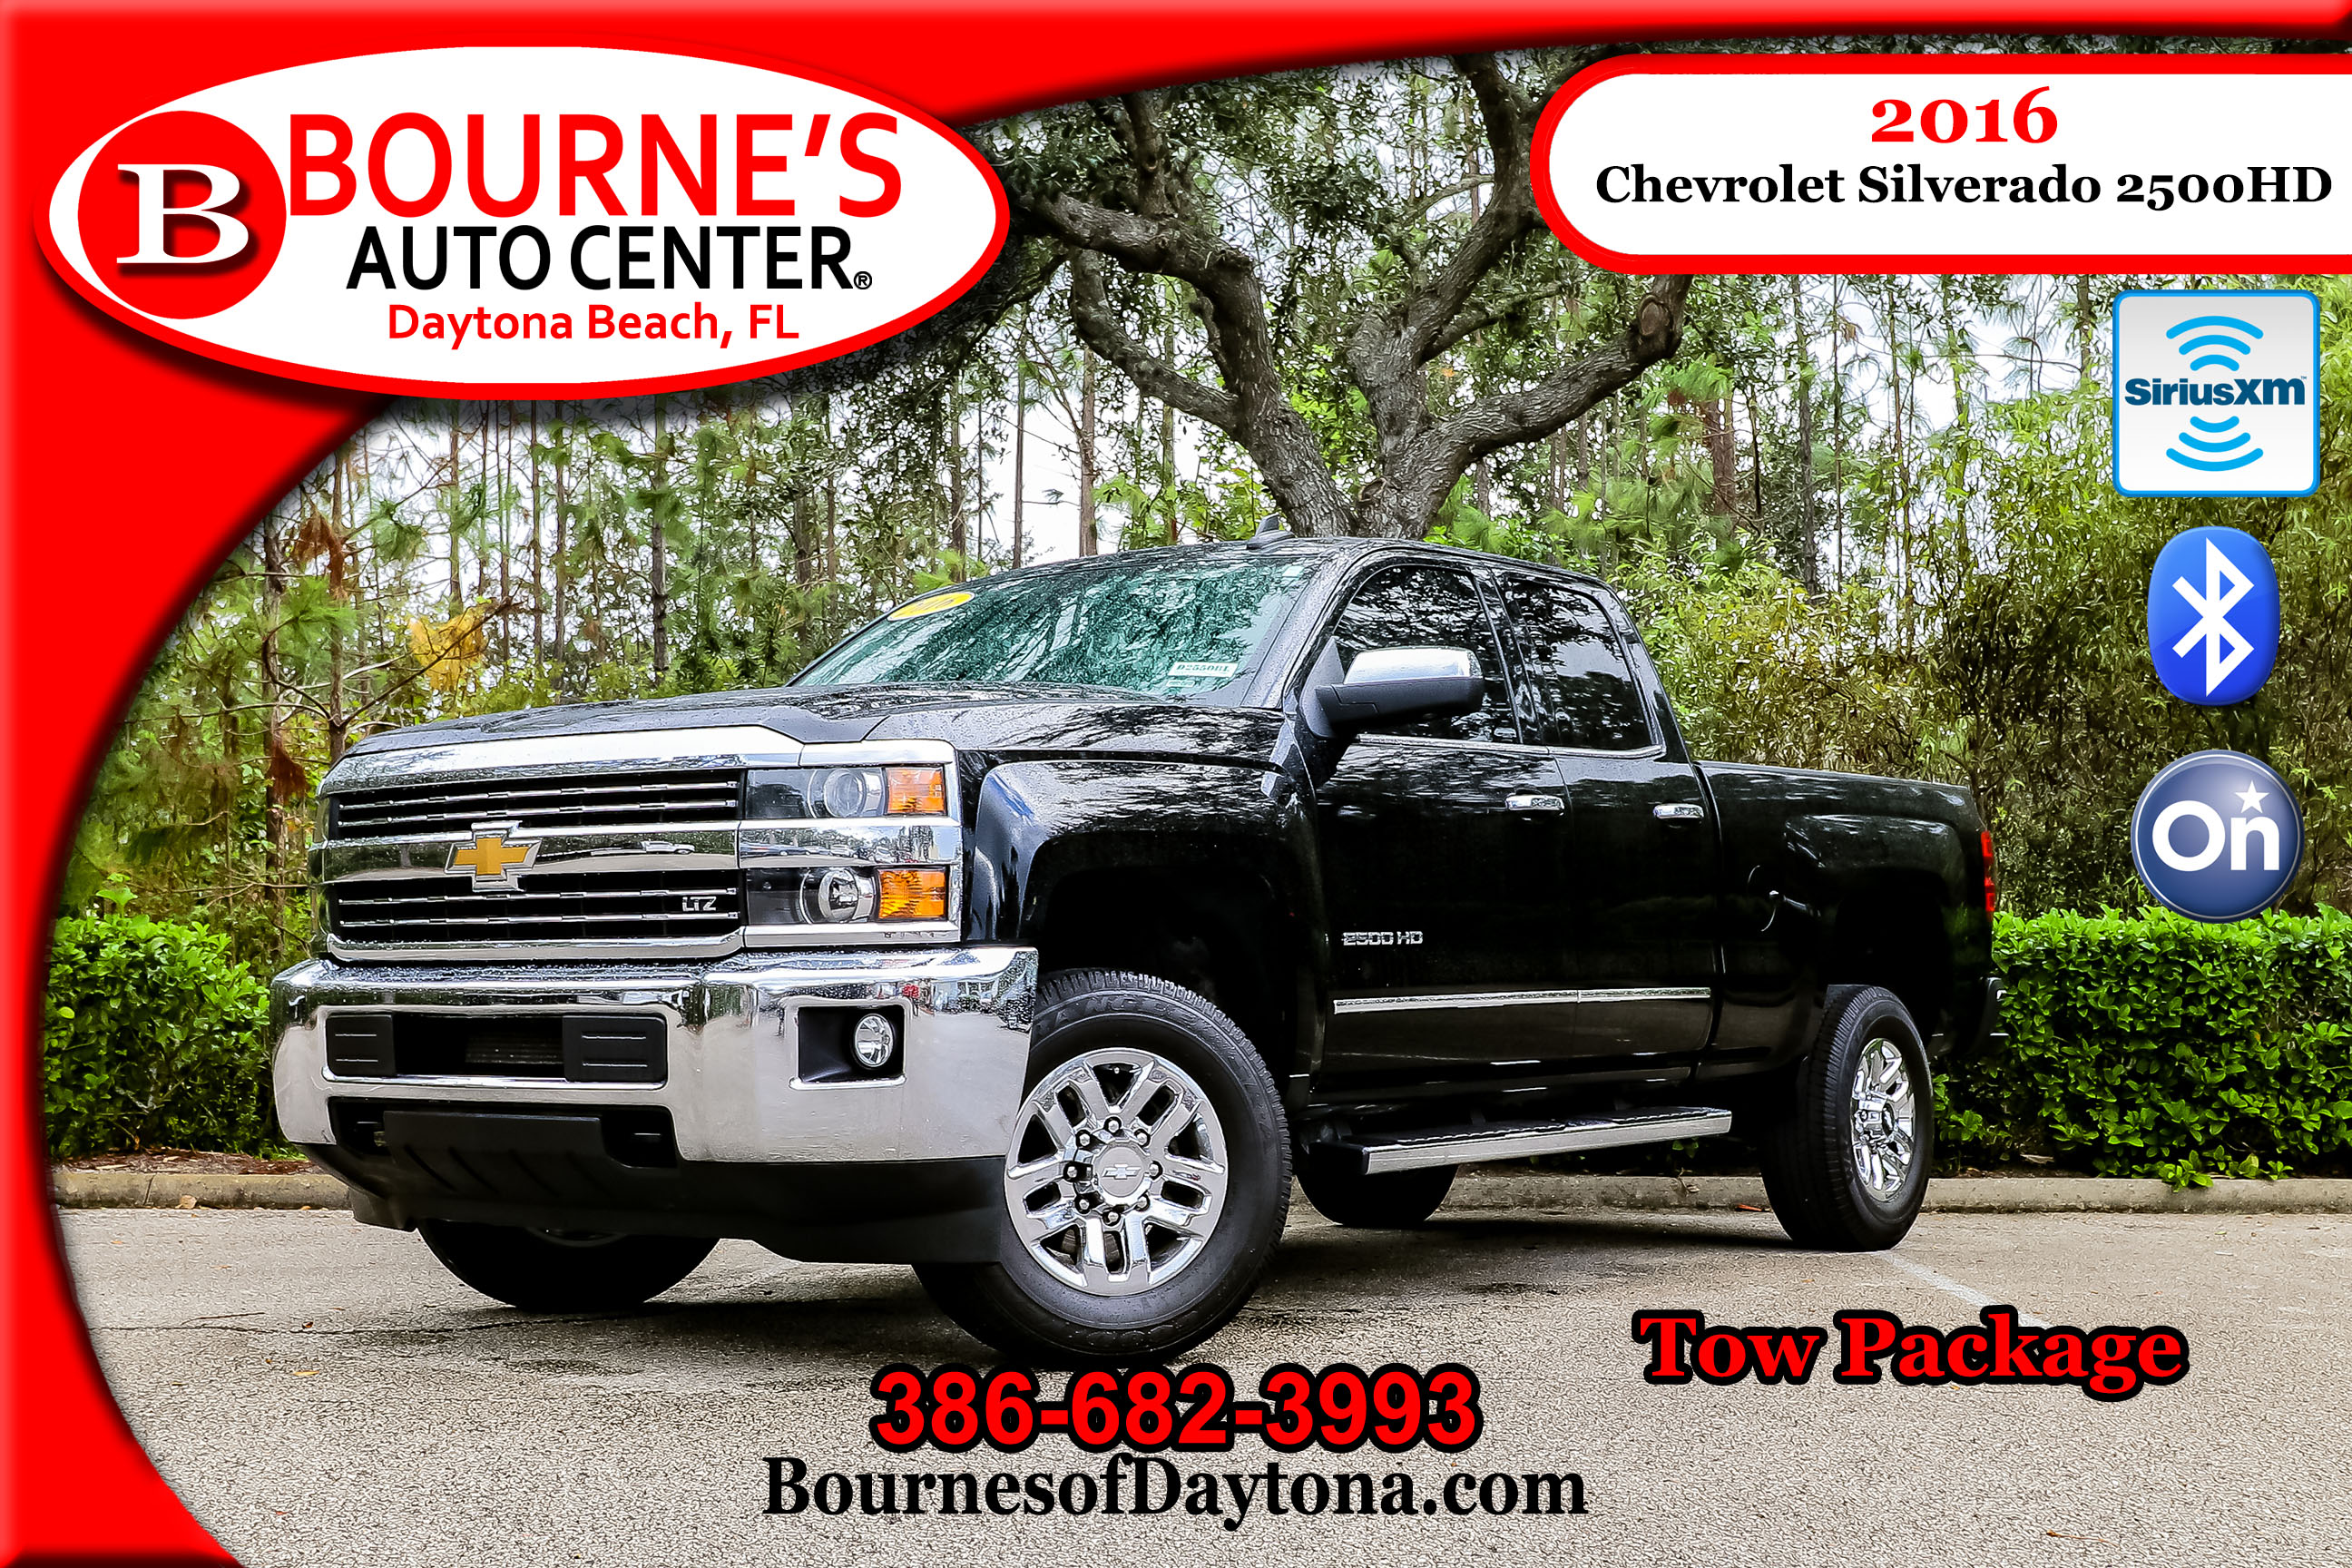 2016 Chevrolet Silverado 2500HD LTZ Tow Package/ OnStar/ XM/ Leather Truck Double Cab